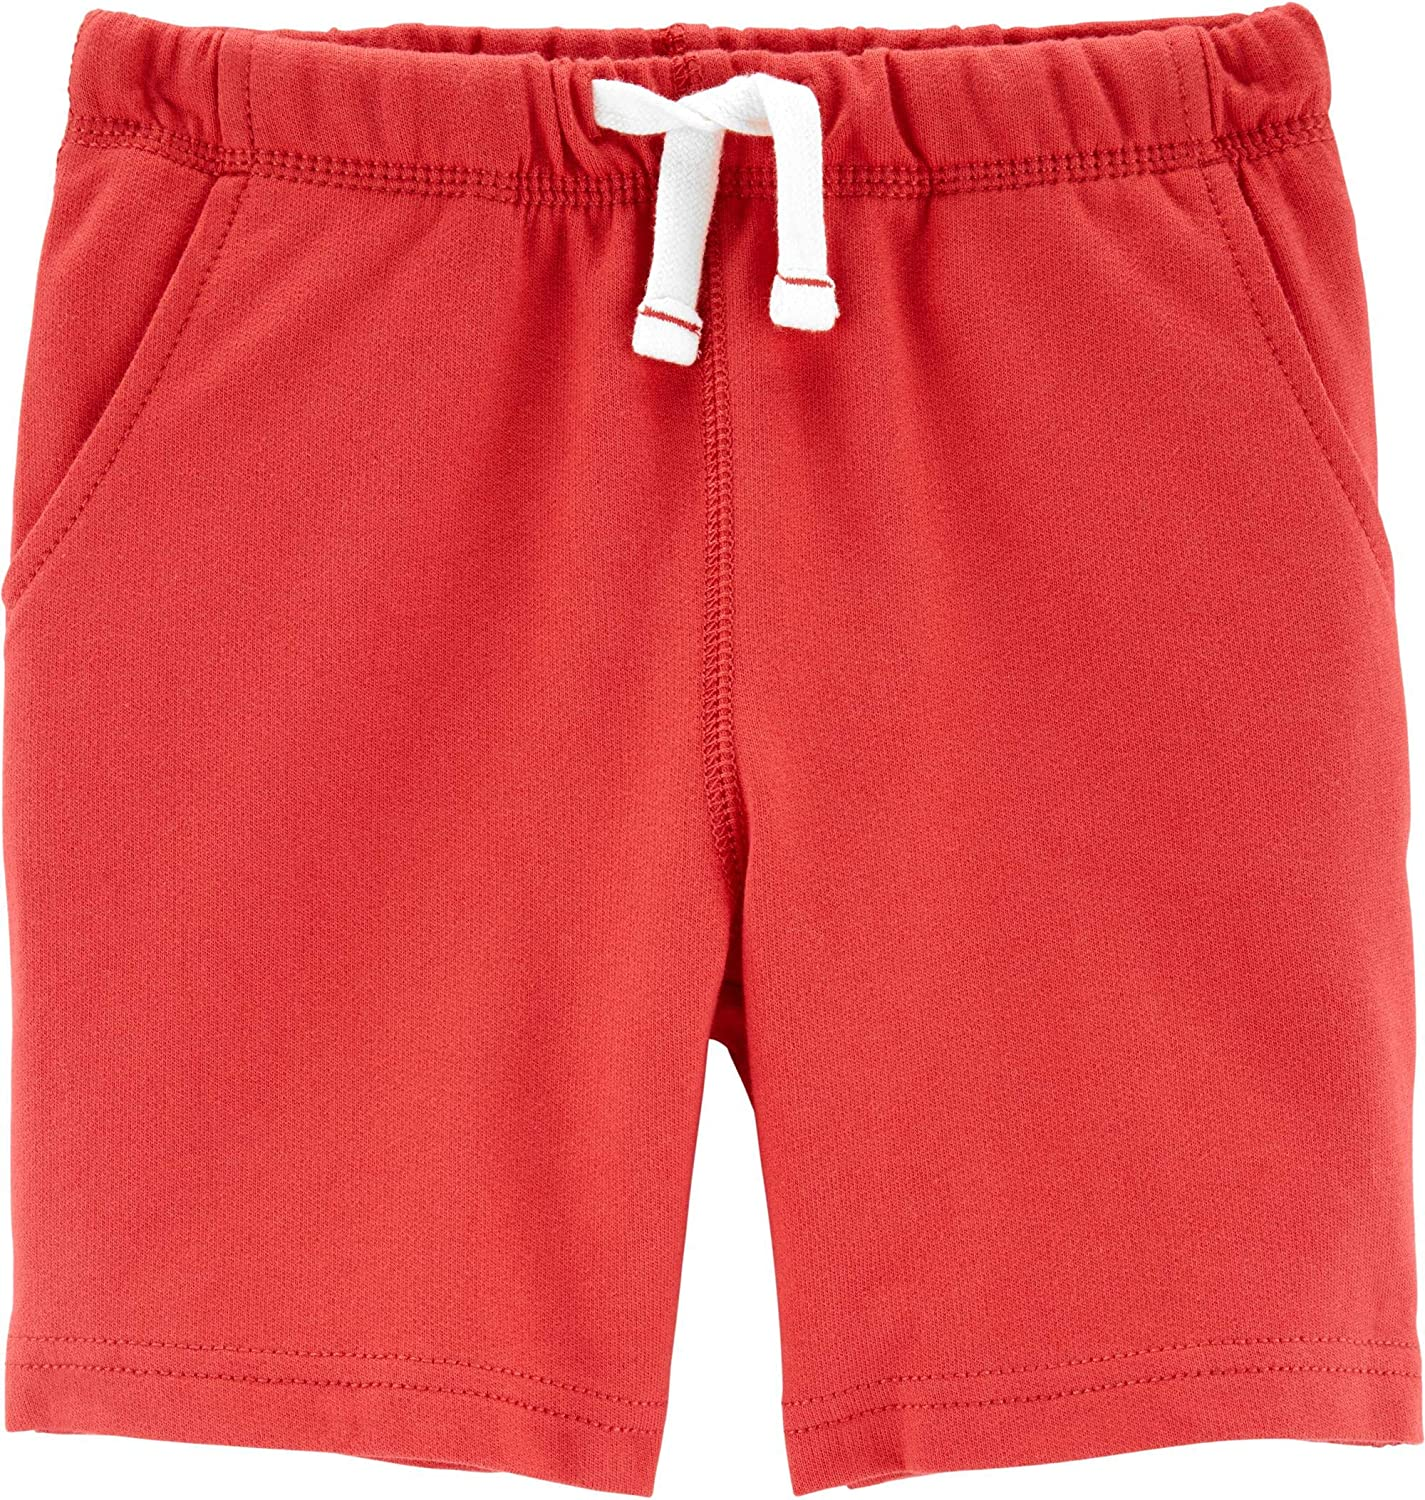 Carter's Boys Pull-On French Terry Shorts, Orange